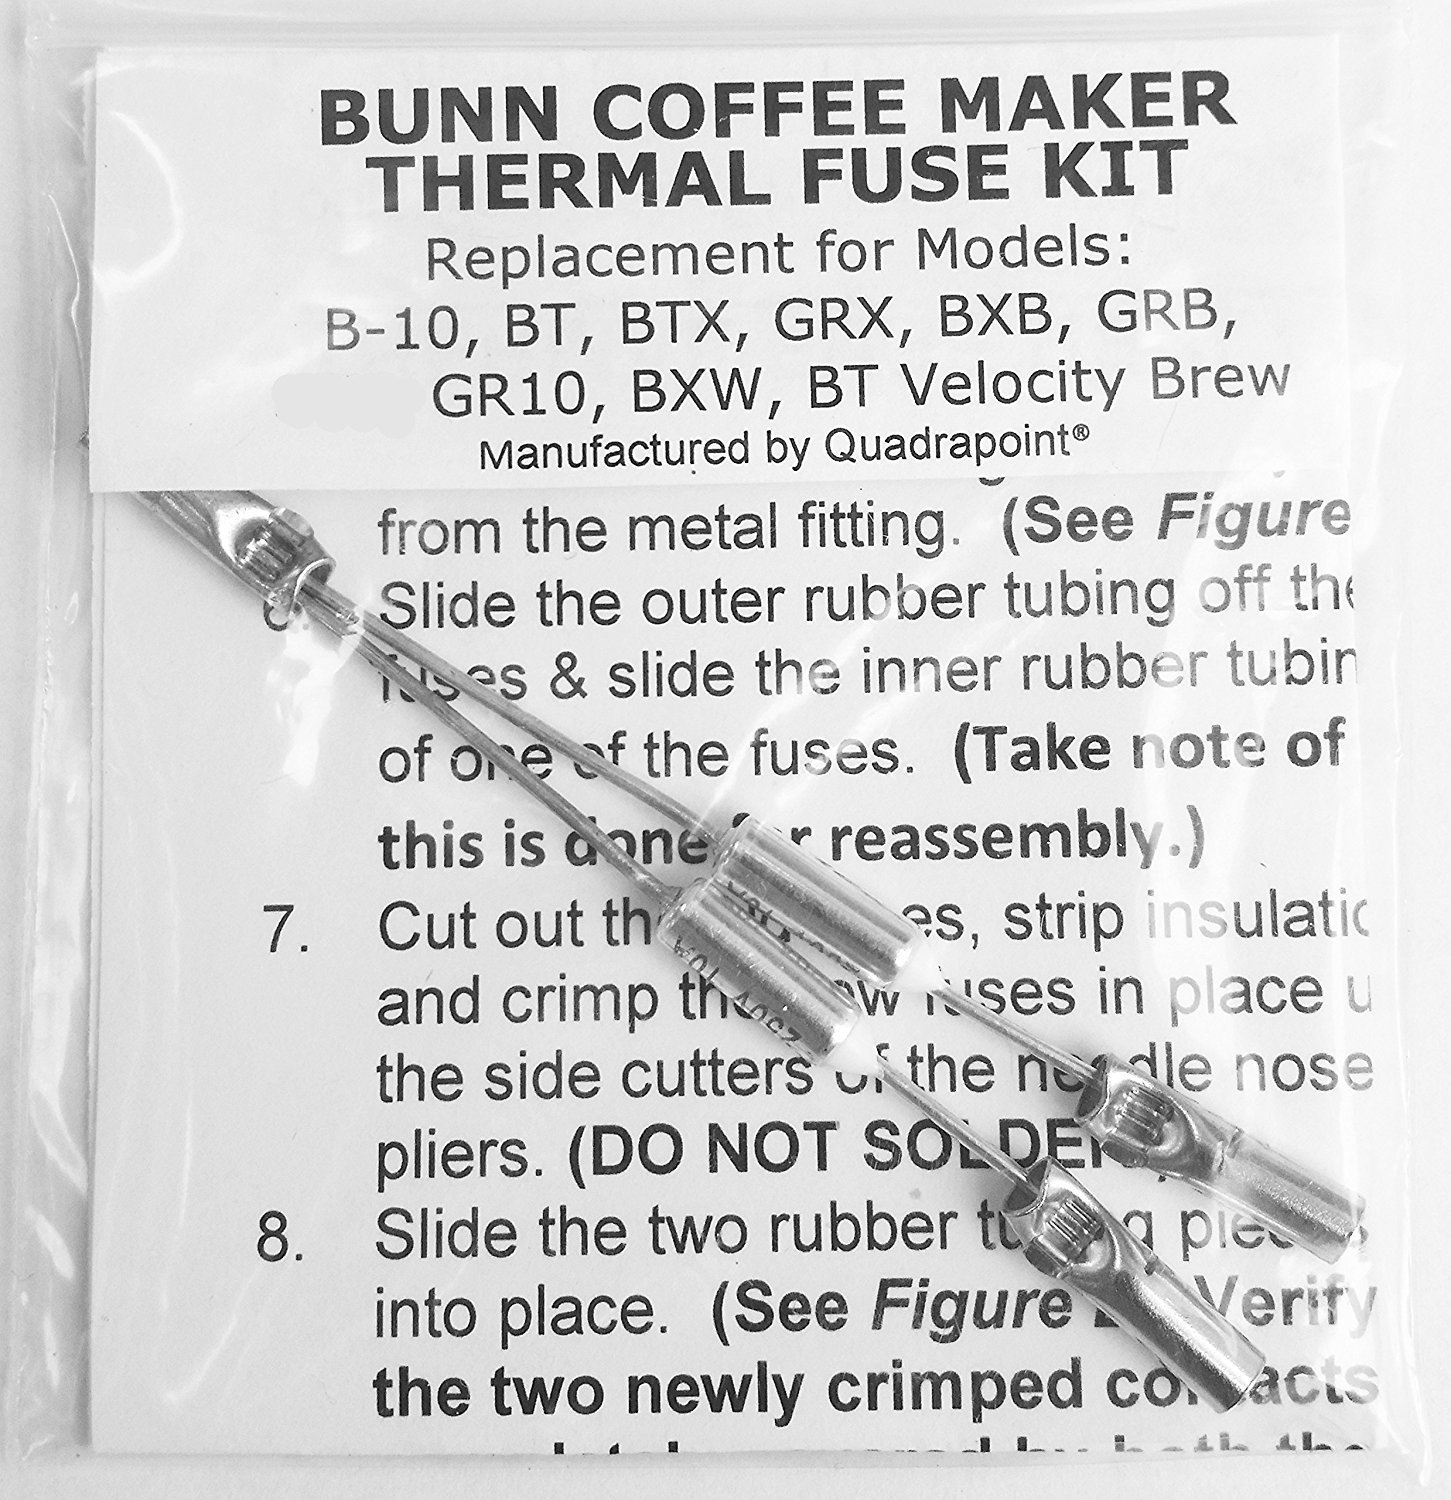 Amazon.com: Repair Your Bunn Coffee Maker, Water Not Heating? Thermal Fuse  Harness (B-10, GRX, BXB, BTX, GRB, BR10, BXW, BT Velocity Brew): Kitchen &  Dining